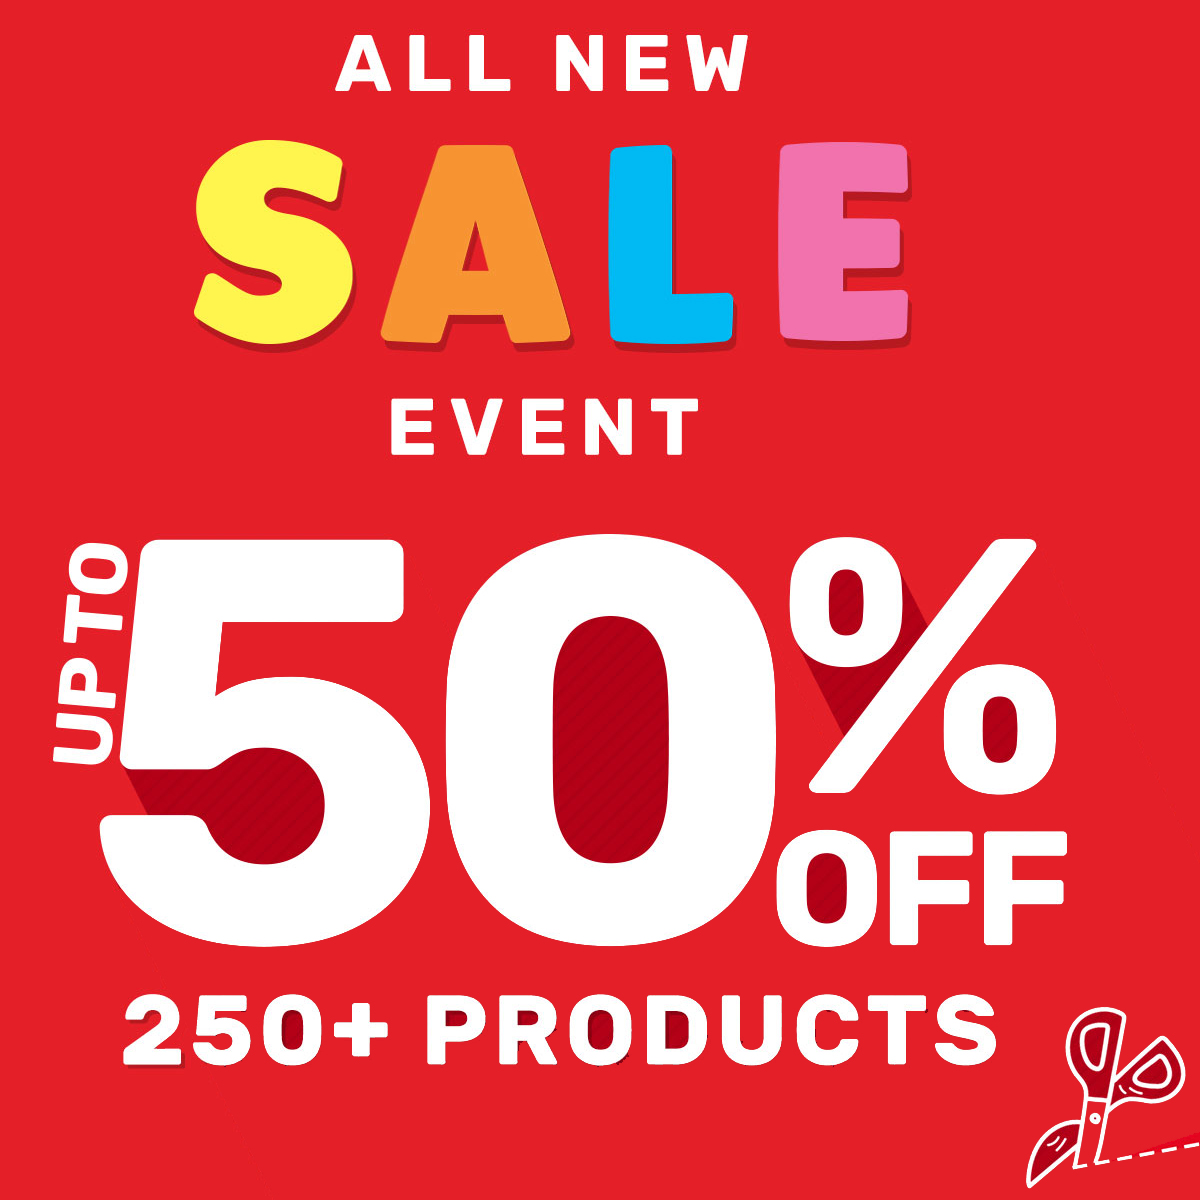 Smile - it's the Smiggle Sale